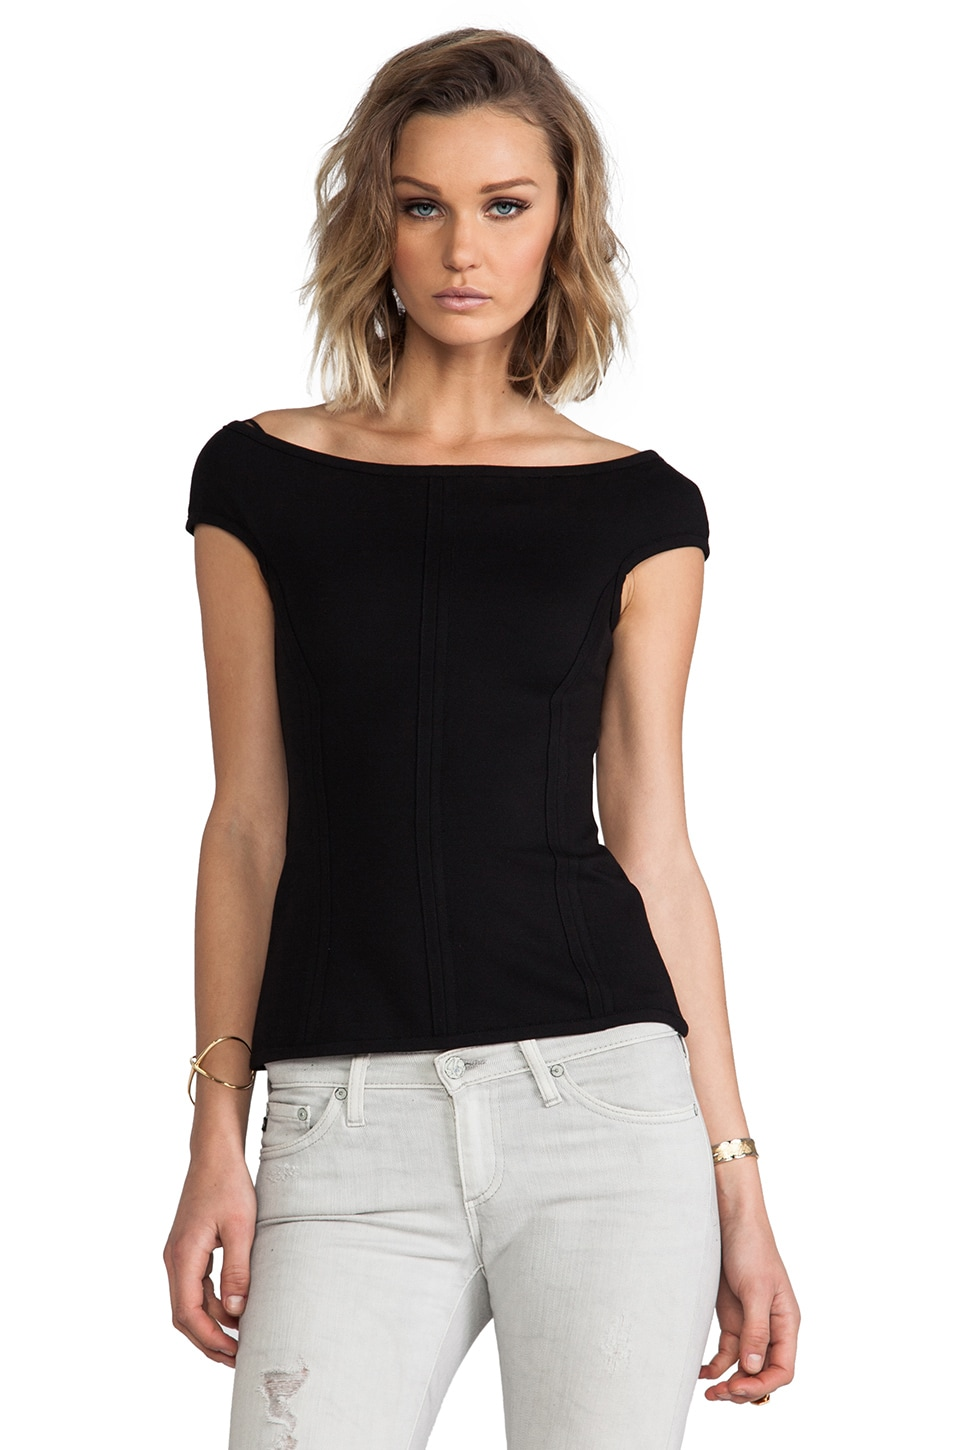 Bailey 44 Audrey Top in Black